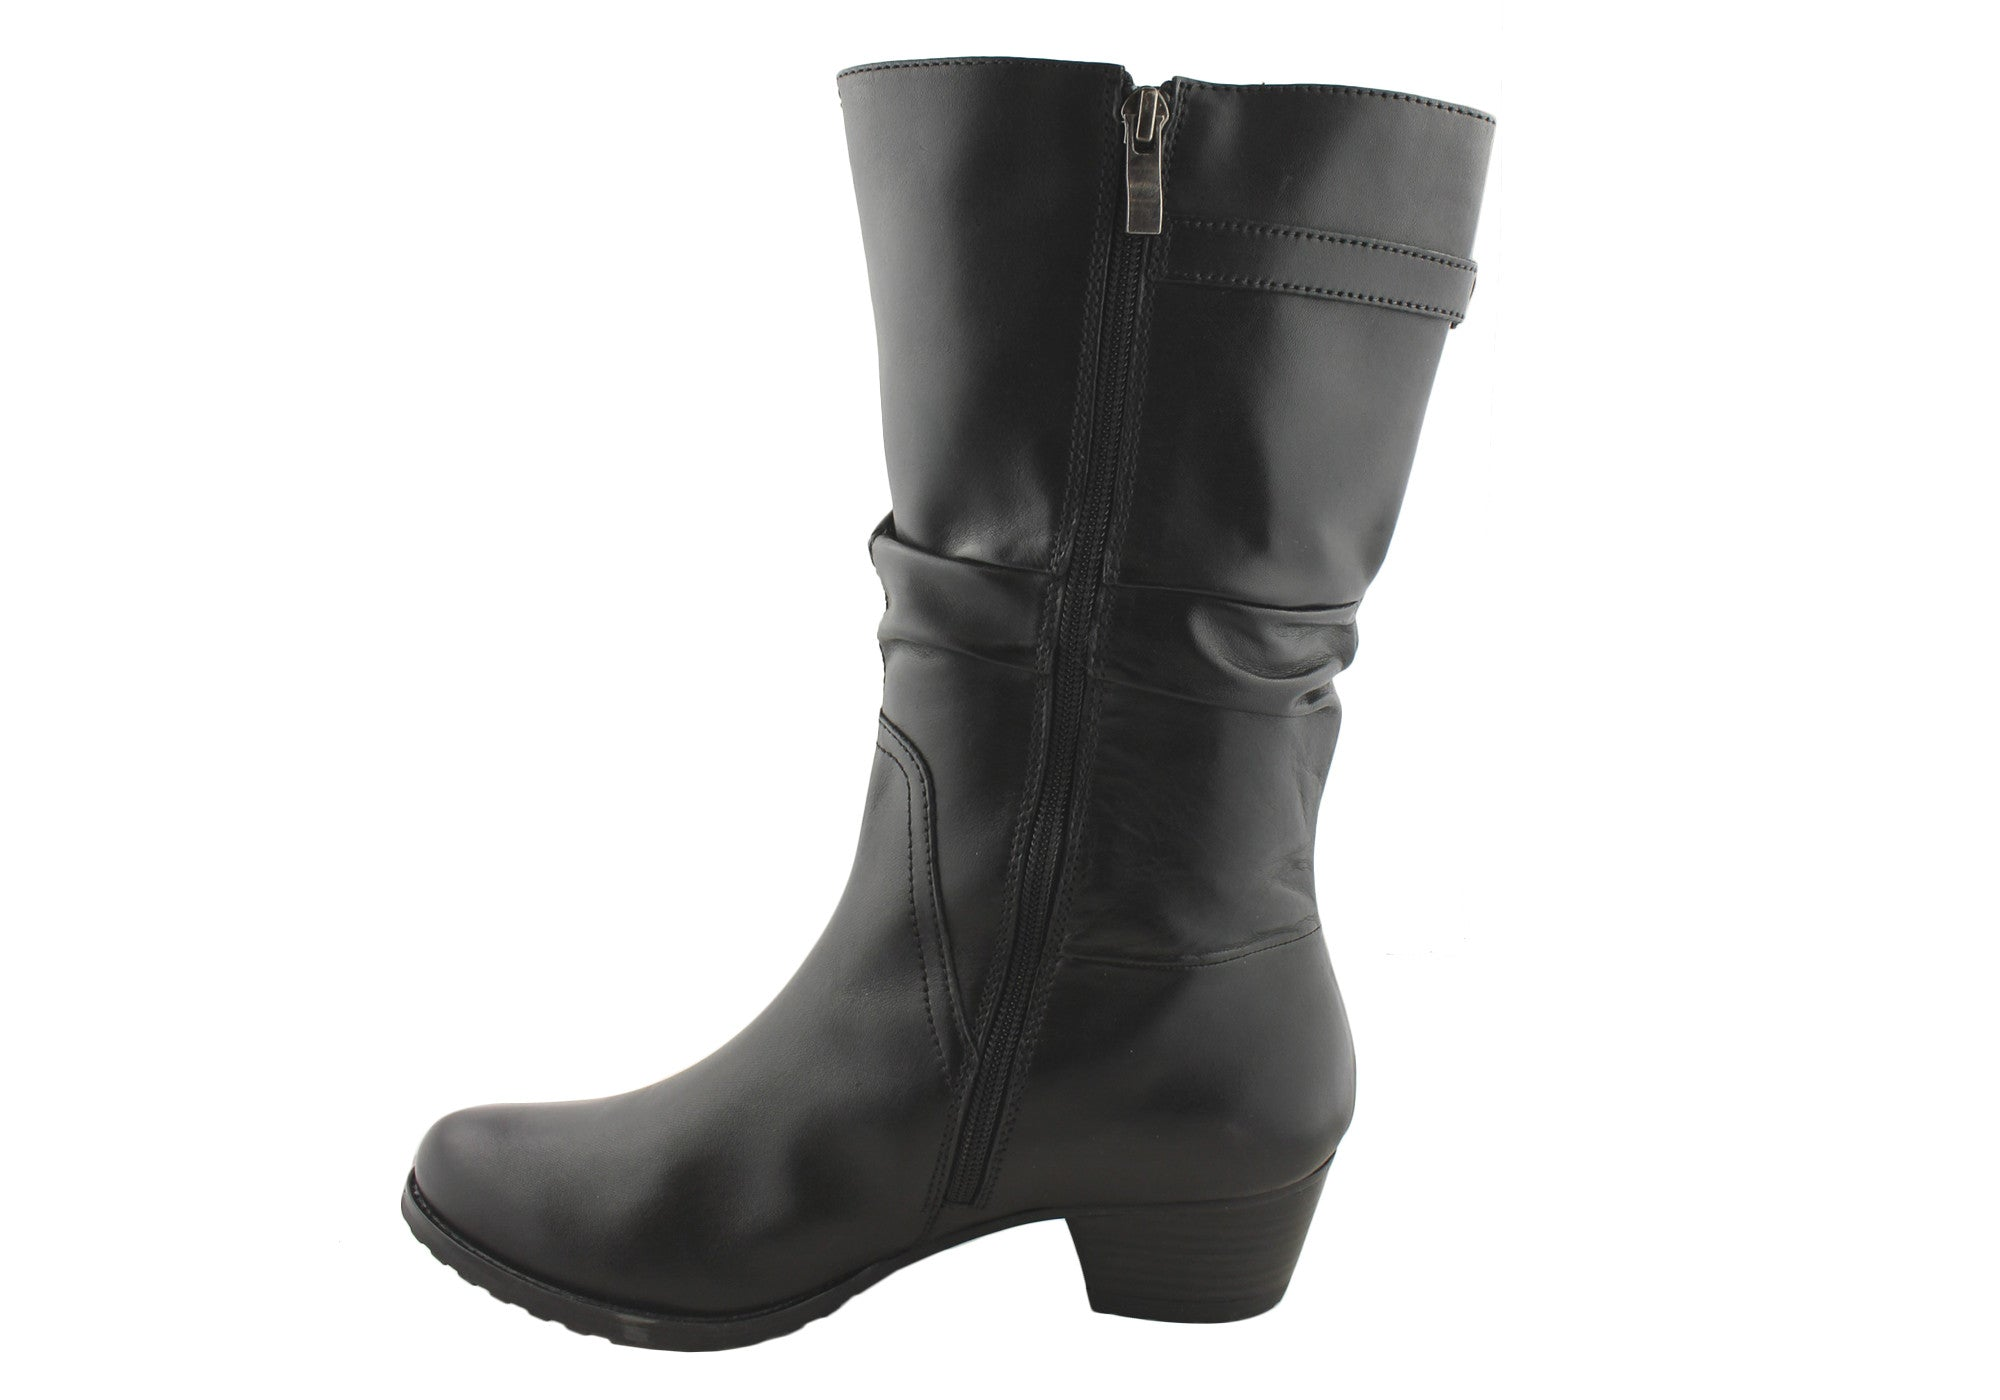 Gino Ventori Cabaret Womens Leather Boots